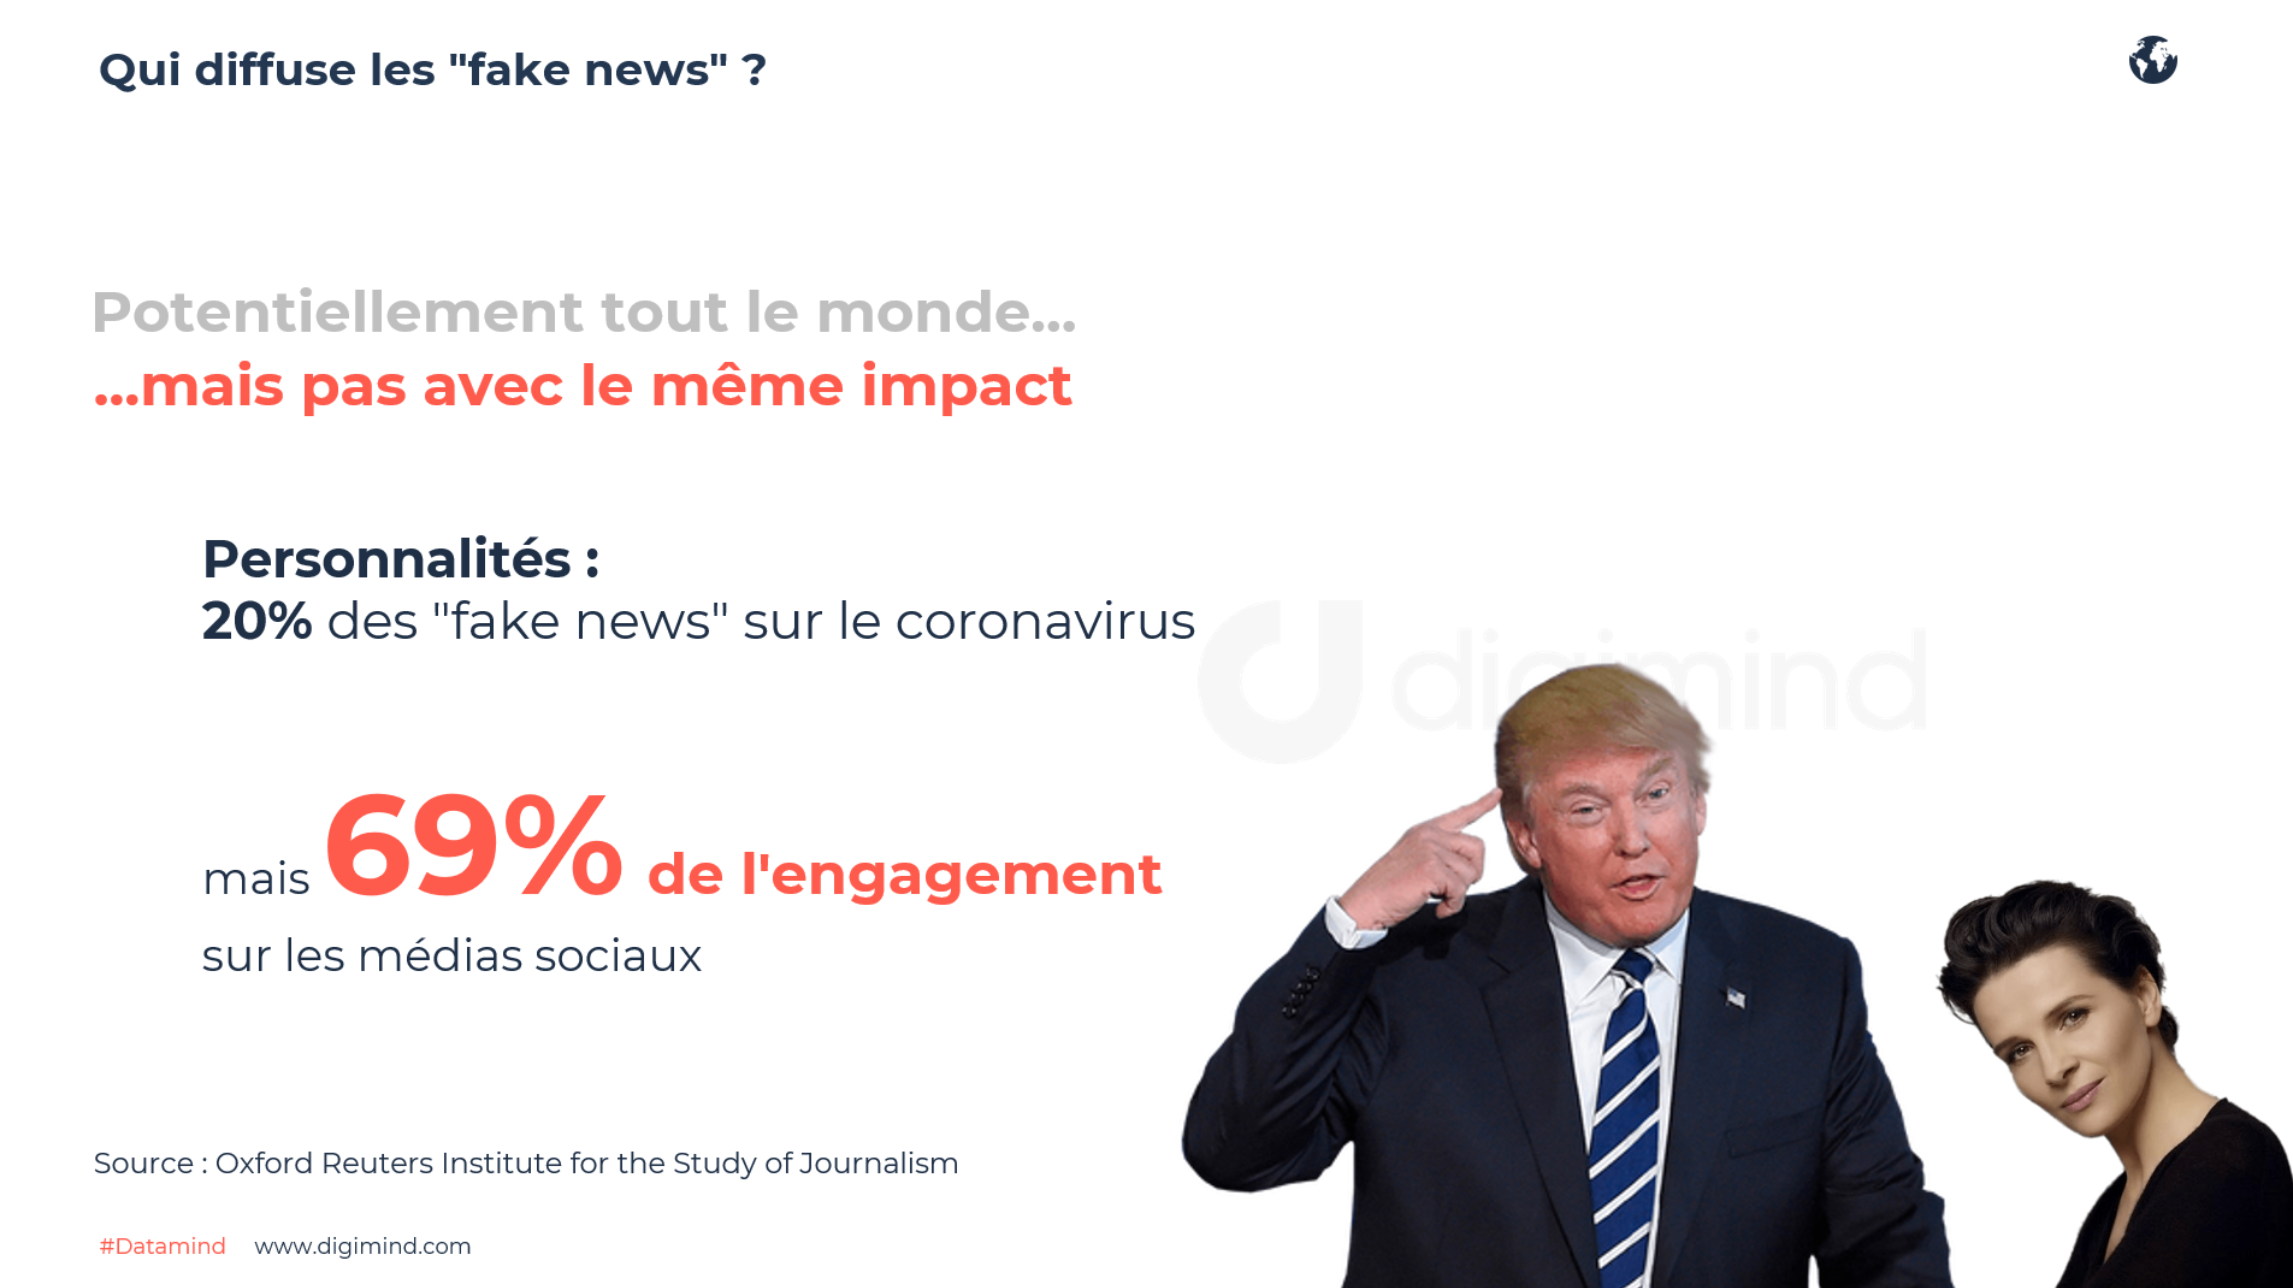 """ui diffuse les """"fake news"""" ? Oxford Reuters Institute for the Study of Journalism"""